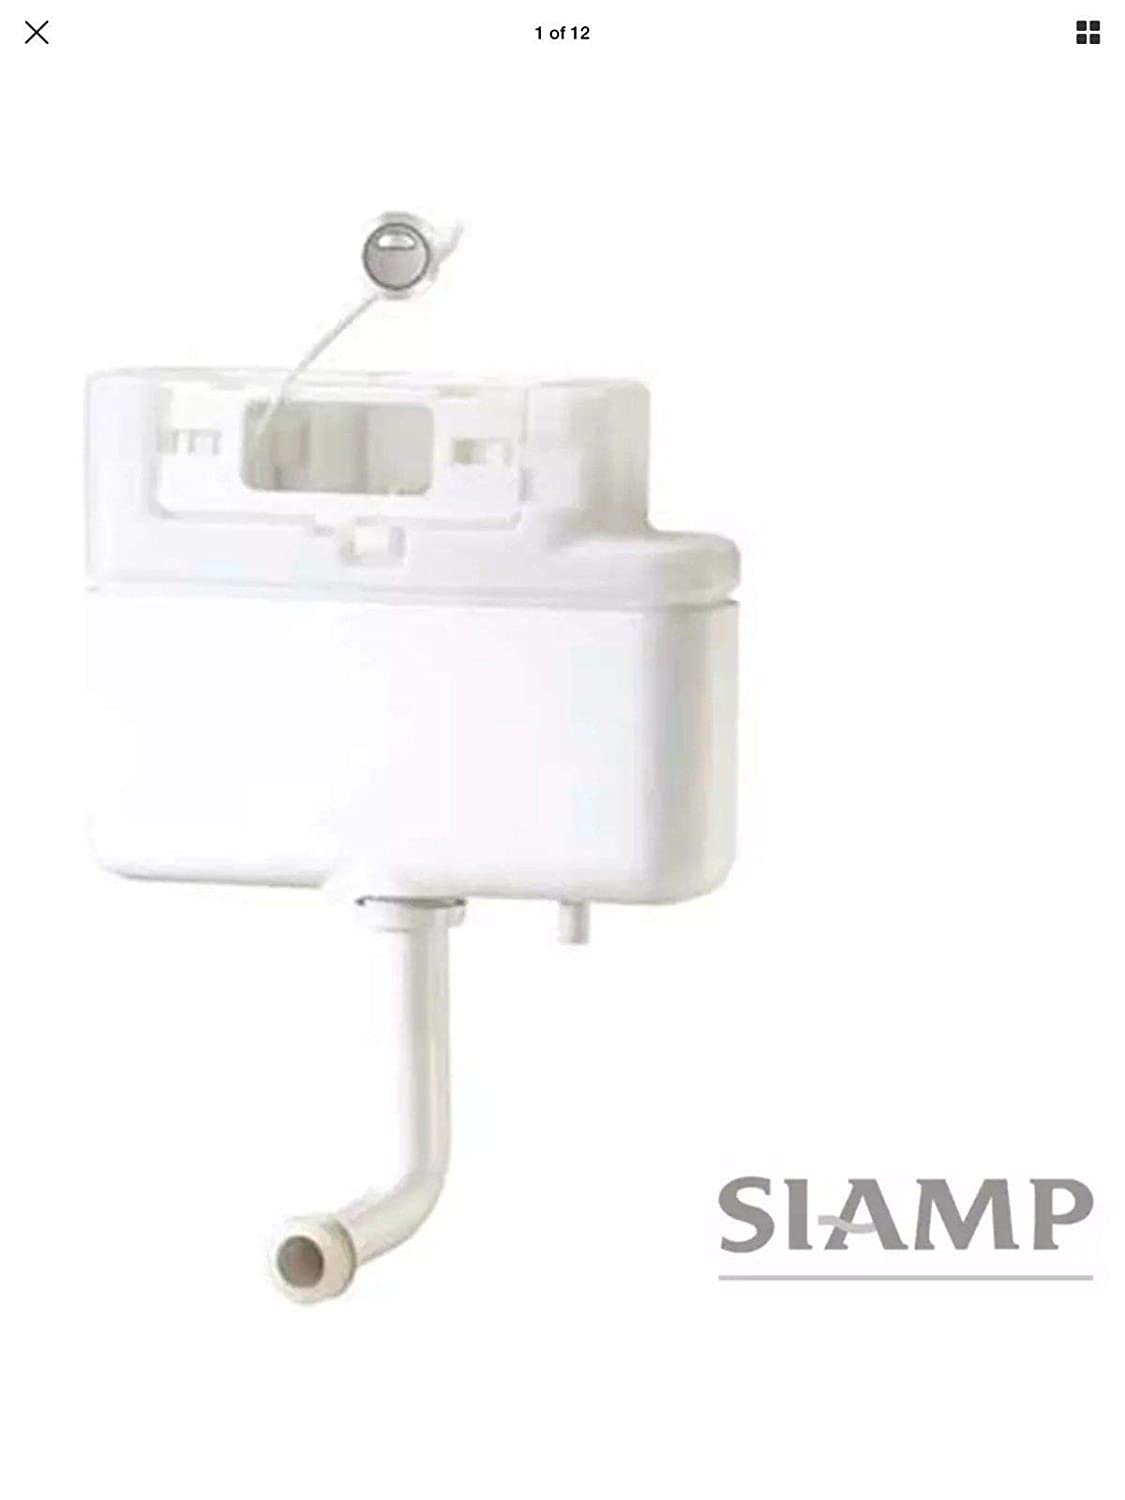 Siamp 31014710 Intra Cable Operated Concealed Cistern Bottom Inlet White